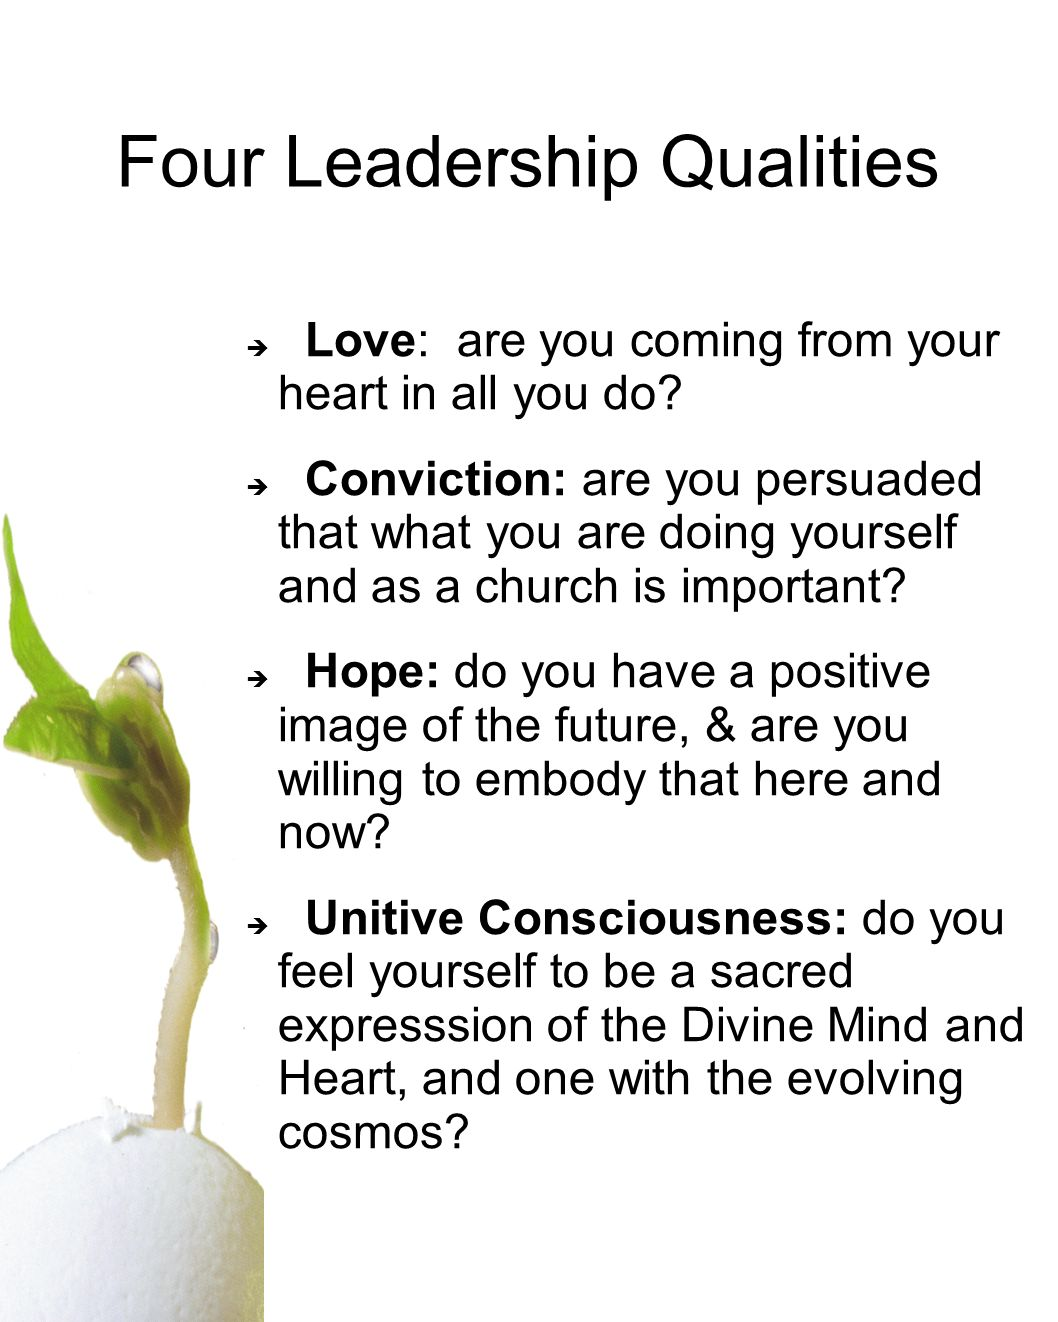 Four Leadership Qualities Love: are you coming from your heart in all you do? Conviction: are you persuaded that what you are doing yourself and as a